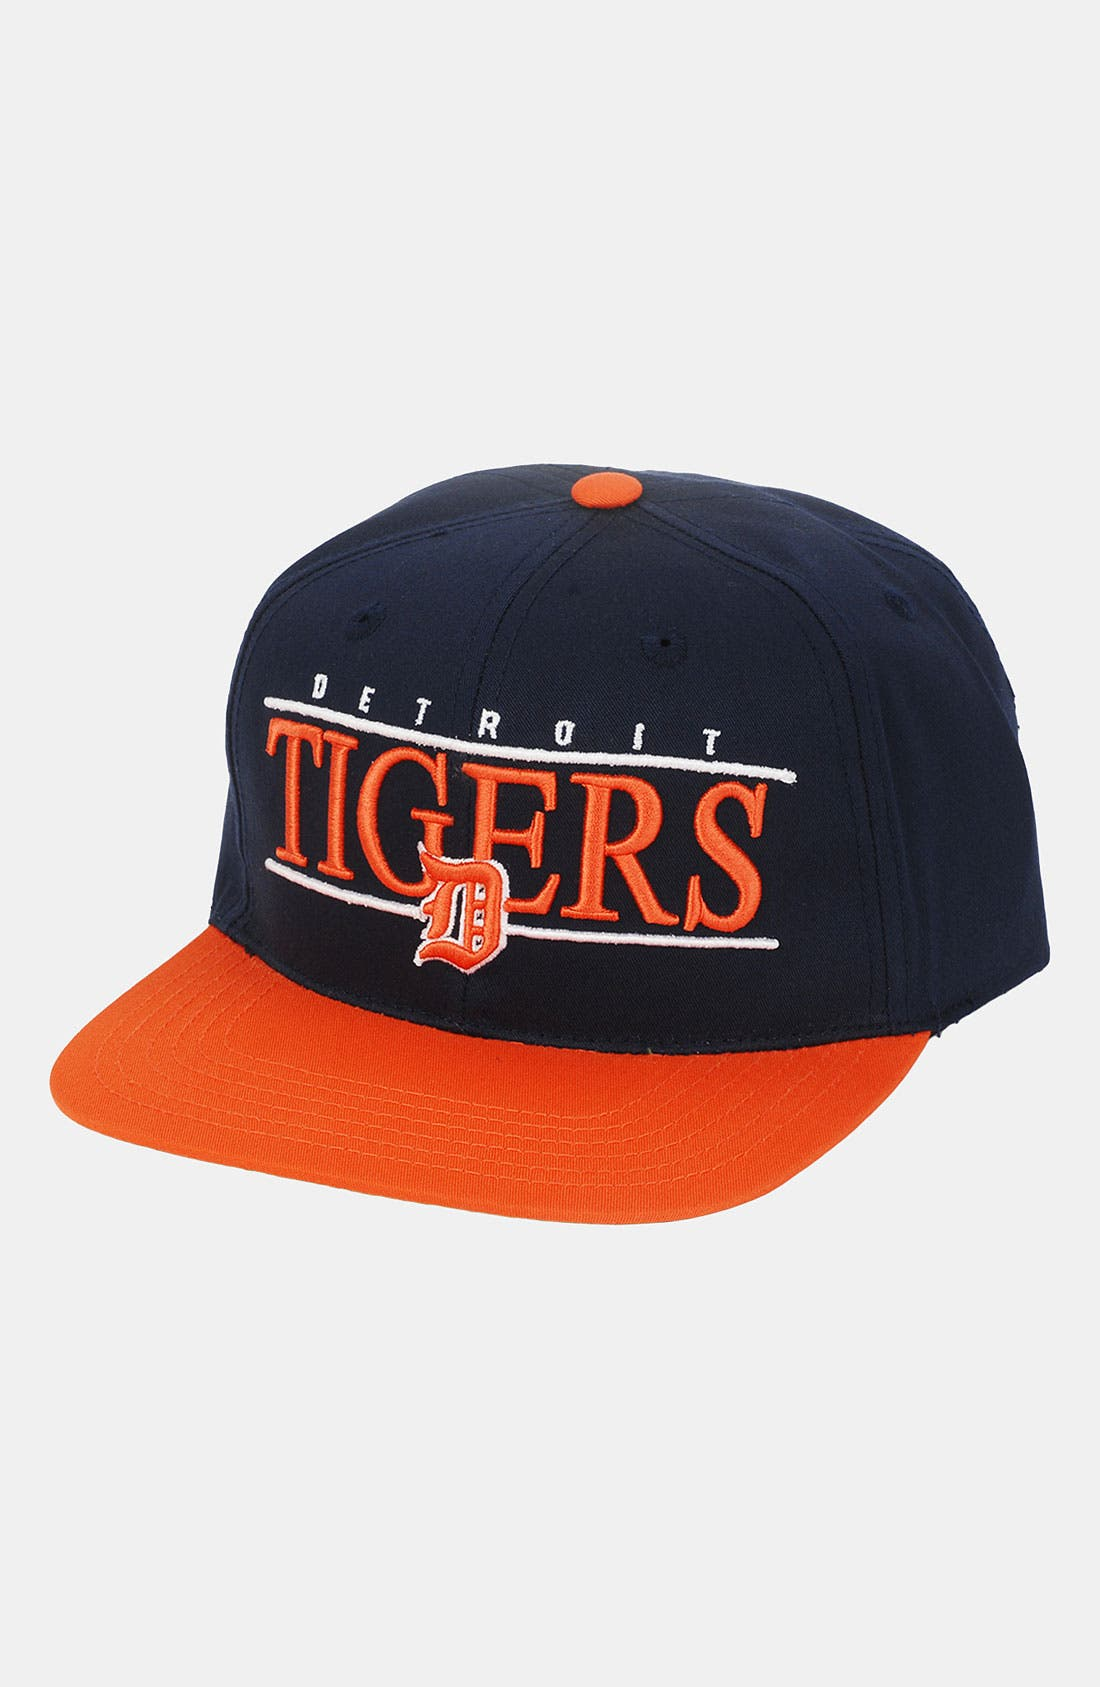 Alternate Image 1 Selected - American Needle 'Detroit Tigers - Nineties' Twill Snapback Baseball Cap